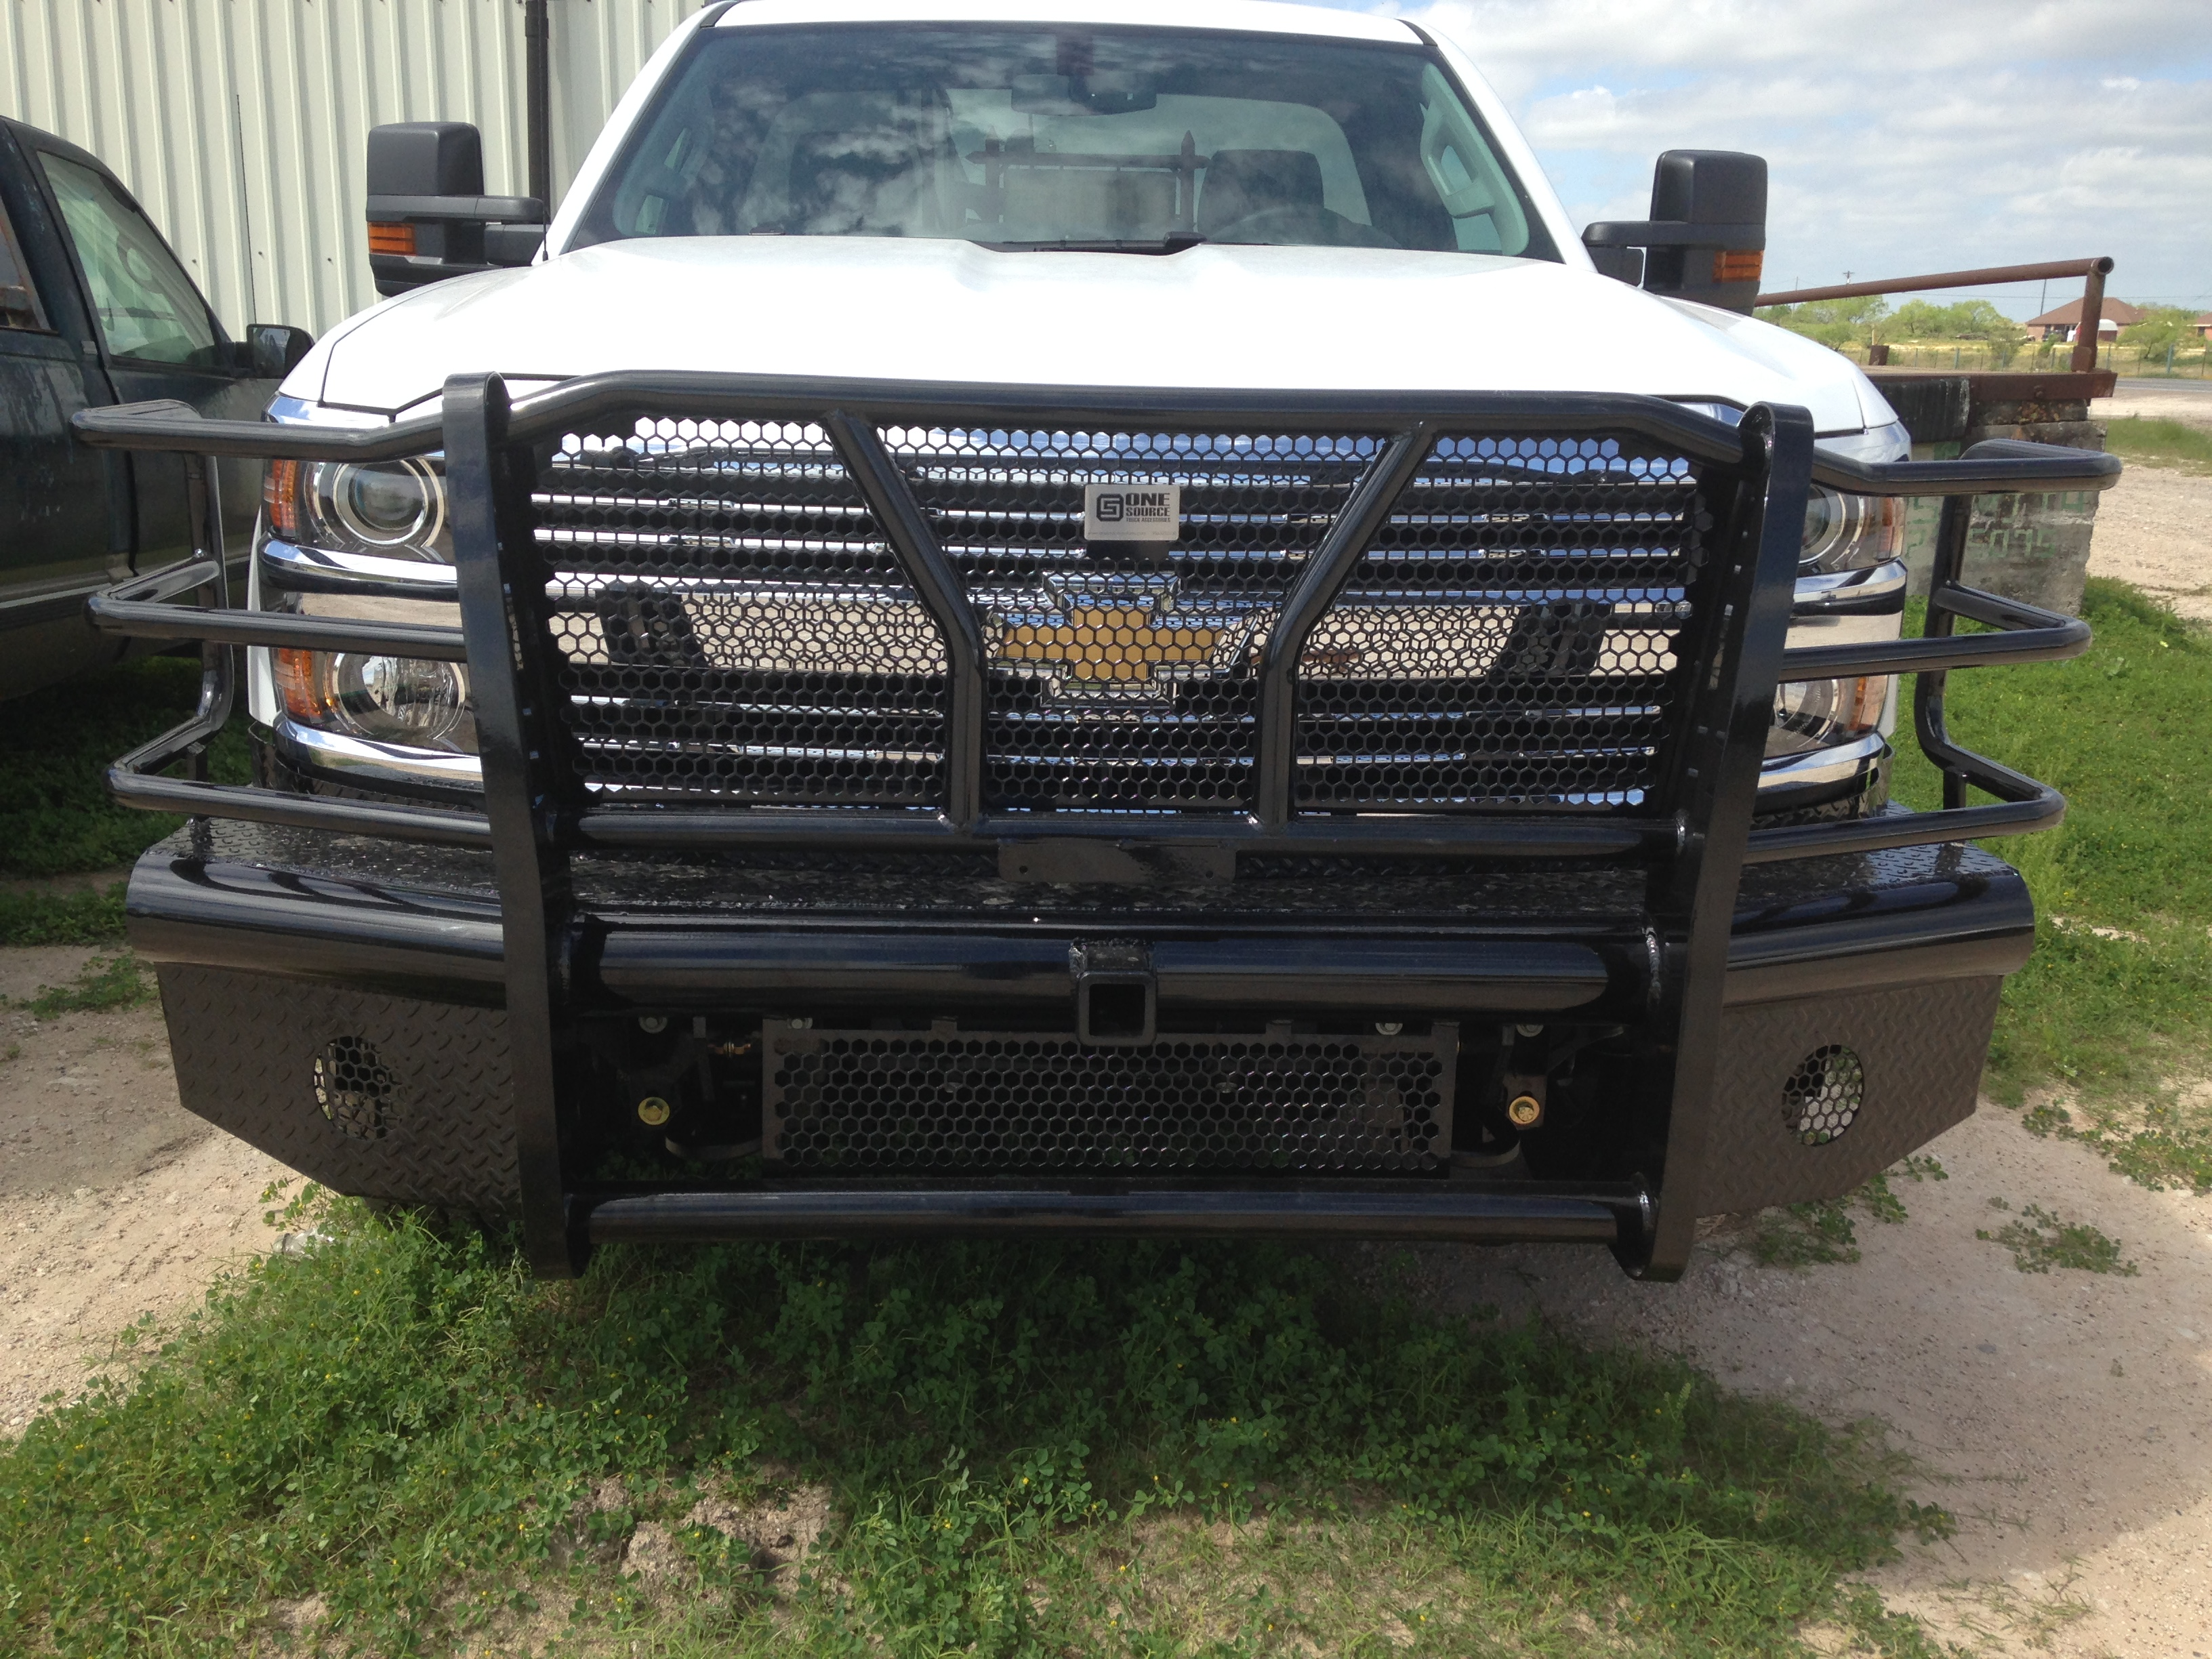 2015 Chevy 2500 front replacement with receiver tube